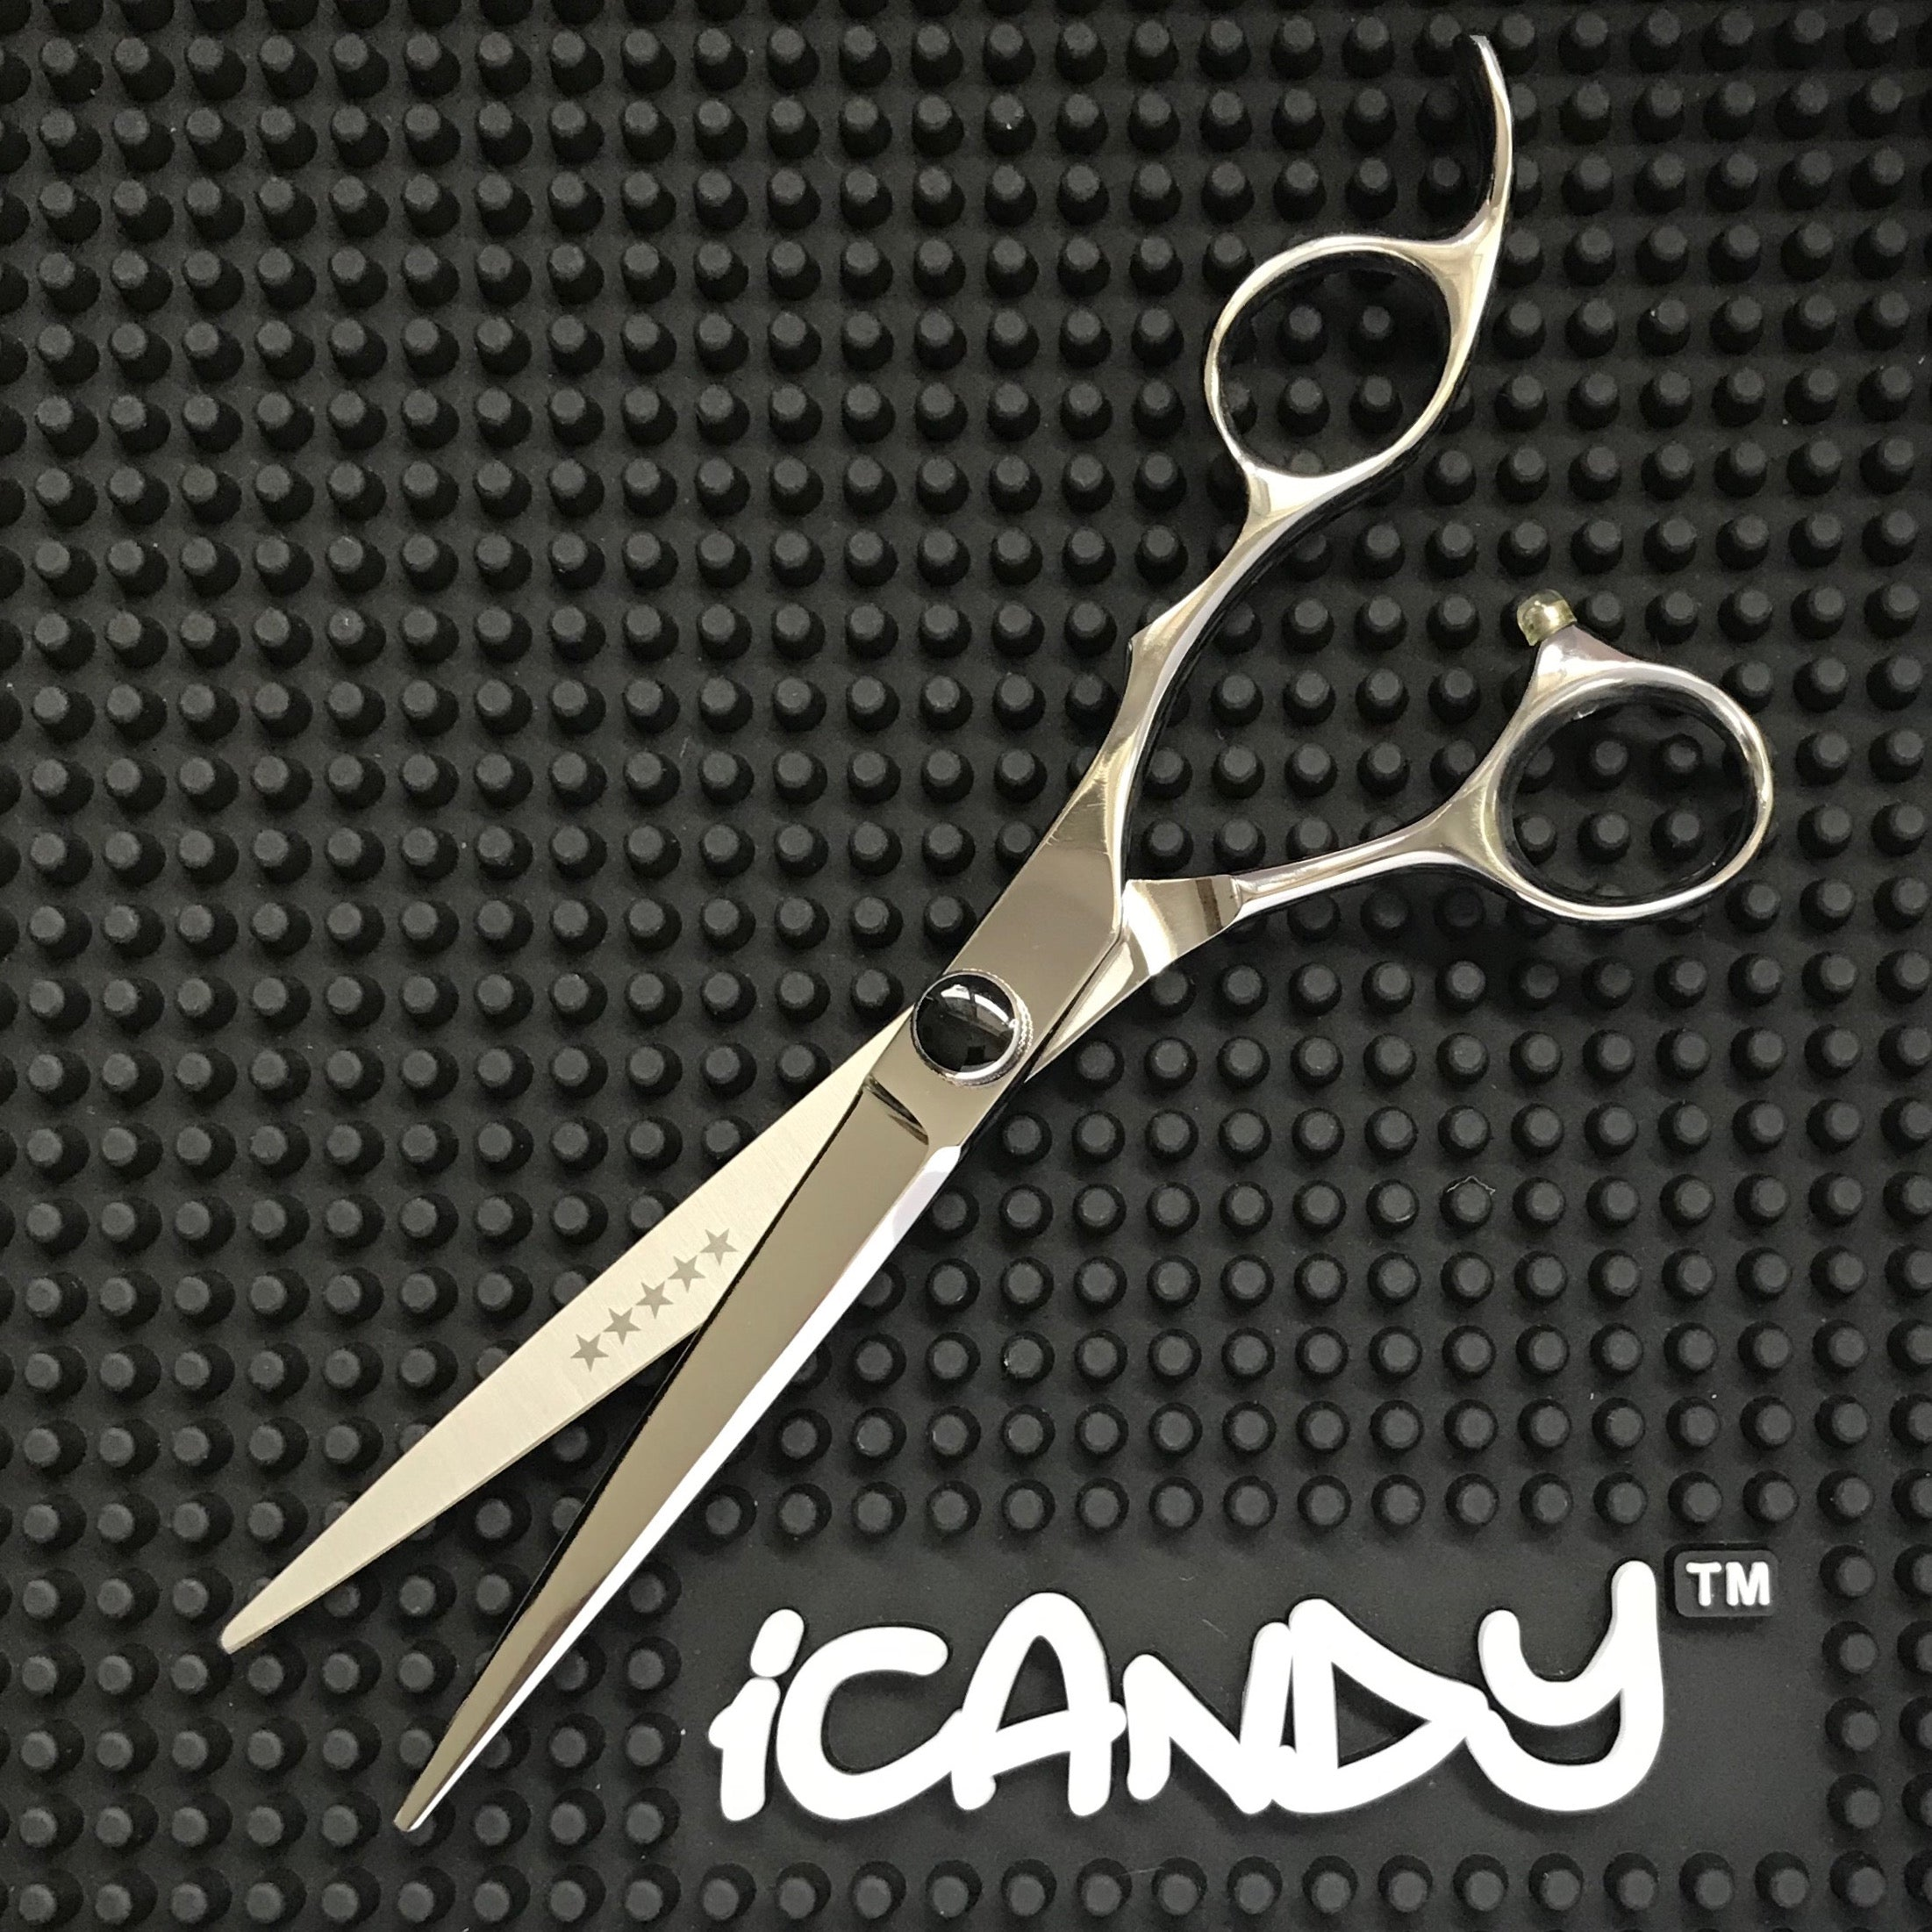 iCandy Elite Scissors  (6.5 inch) - iCandy Scissors